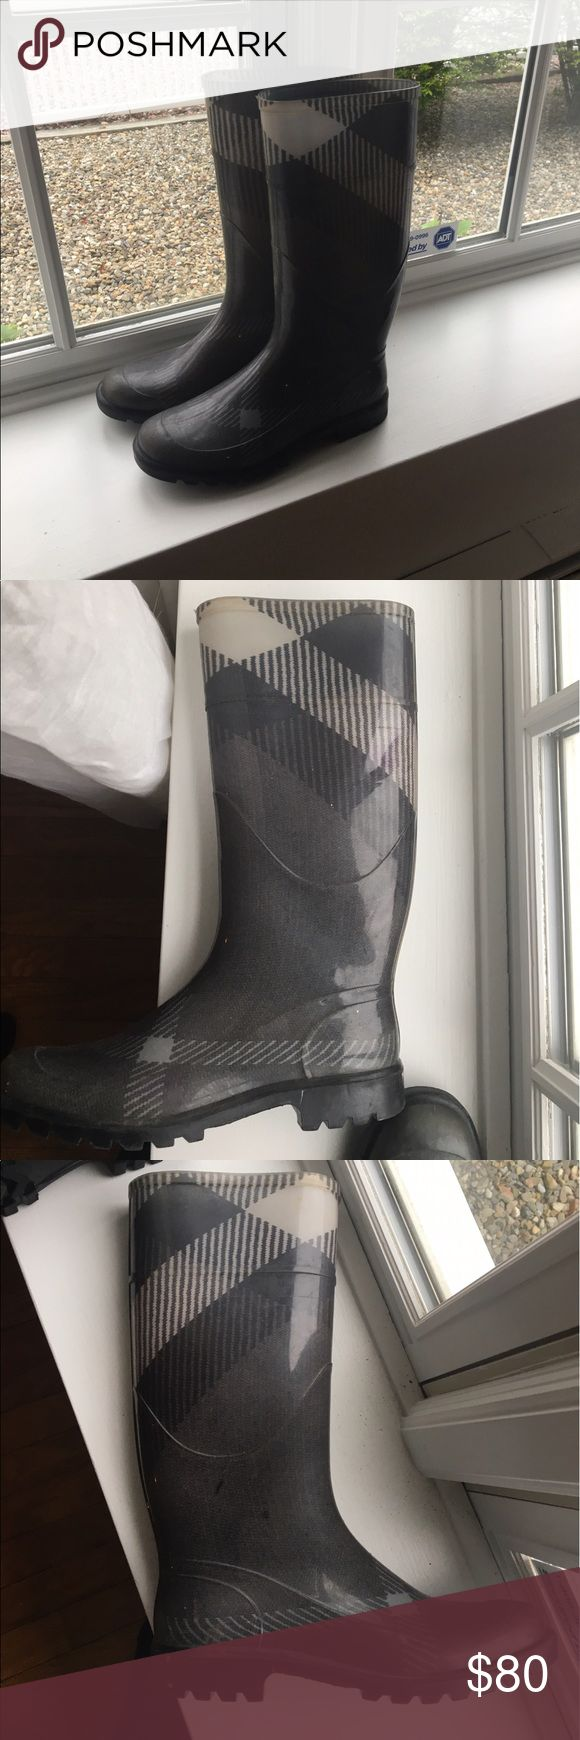 Burberry Wellington Rain Boots Burberry Wellington Boots in grey. These boots have been worn a few times. Some discoloration on the white and some black scuff marks. I do not have the box anymore :/. Will provide additional pics if necessary Burberry Shoes Winter & Rain Boots